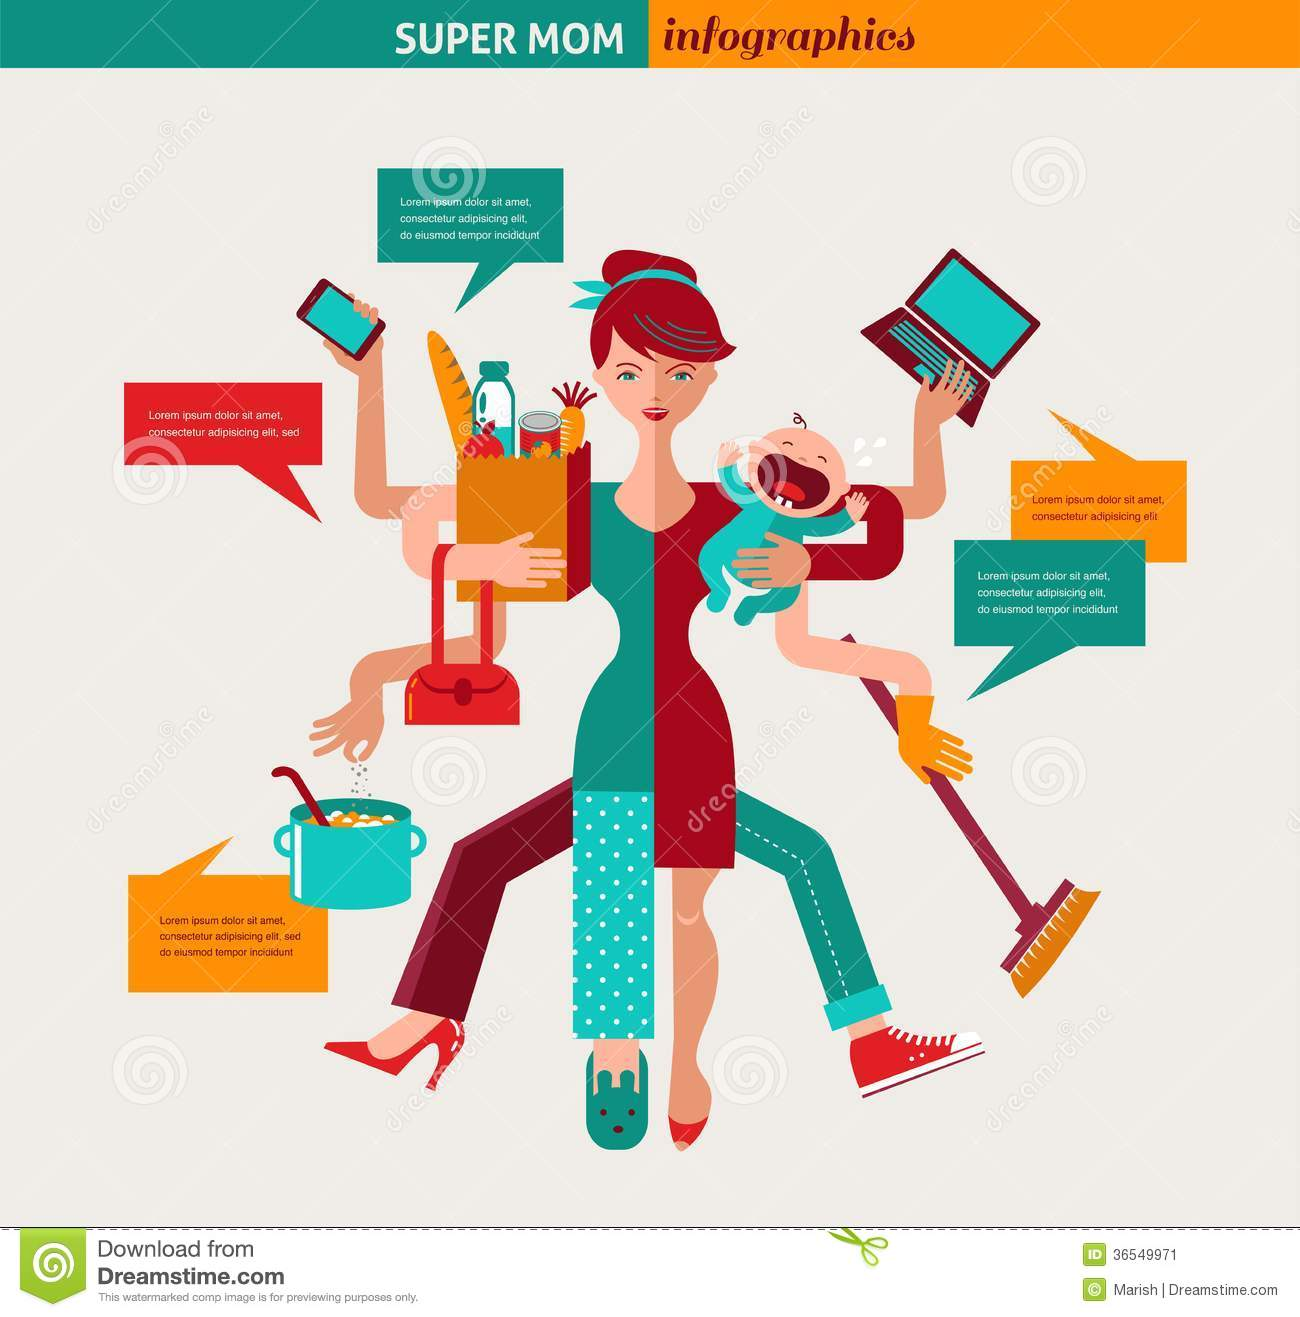 Super Mom - mother with baby, working, coocking, cleaning and make a